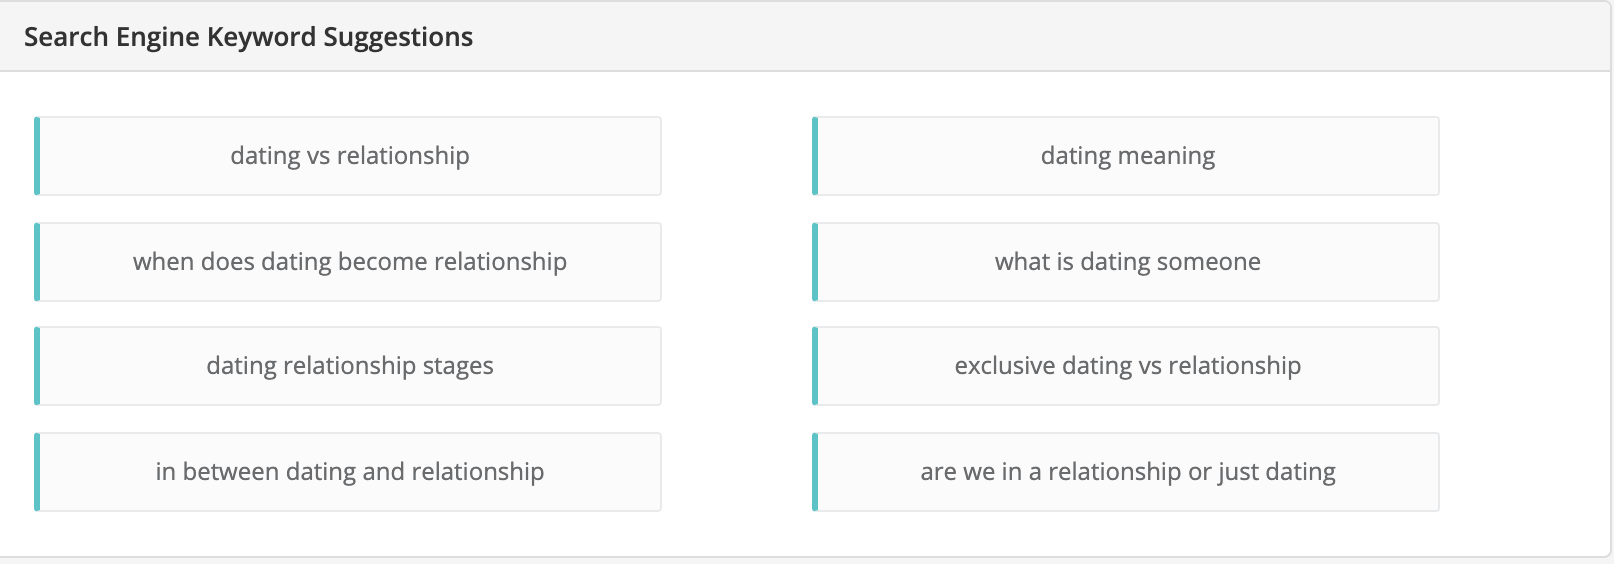 dating and relationship niche related keywords